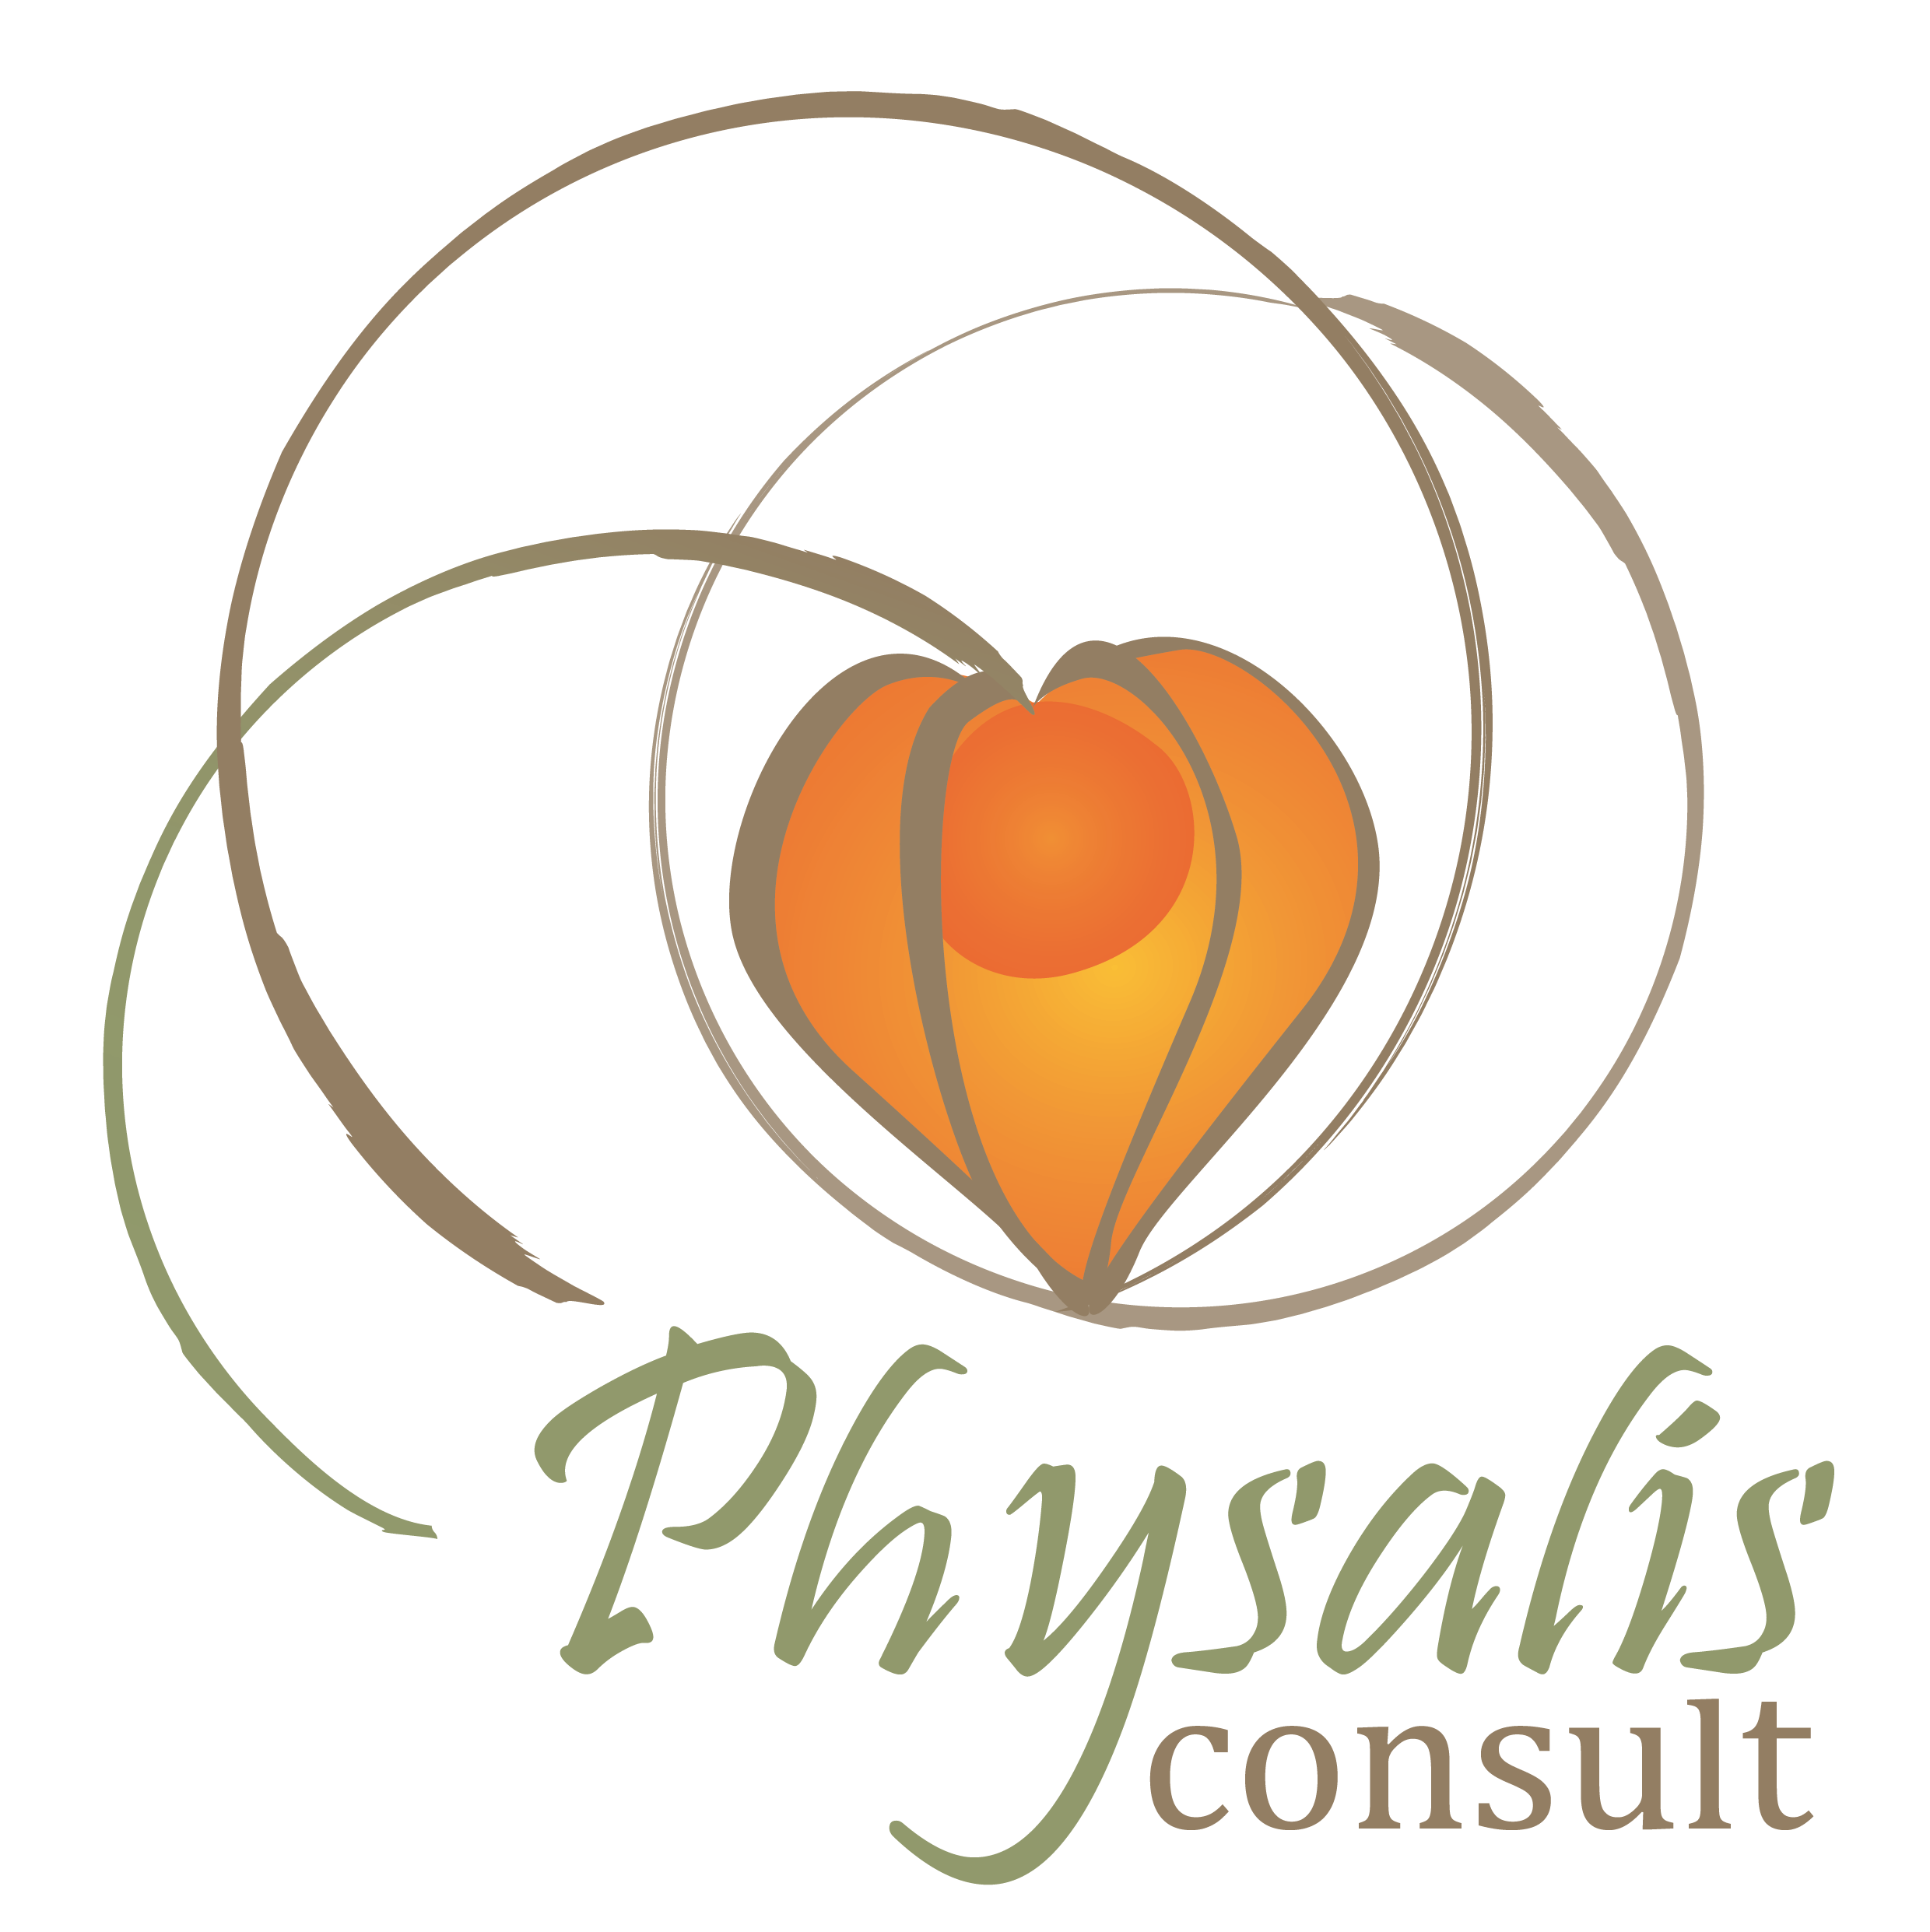 Physalis consult